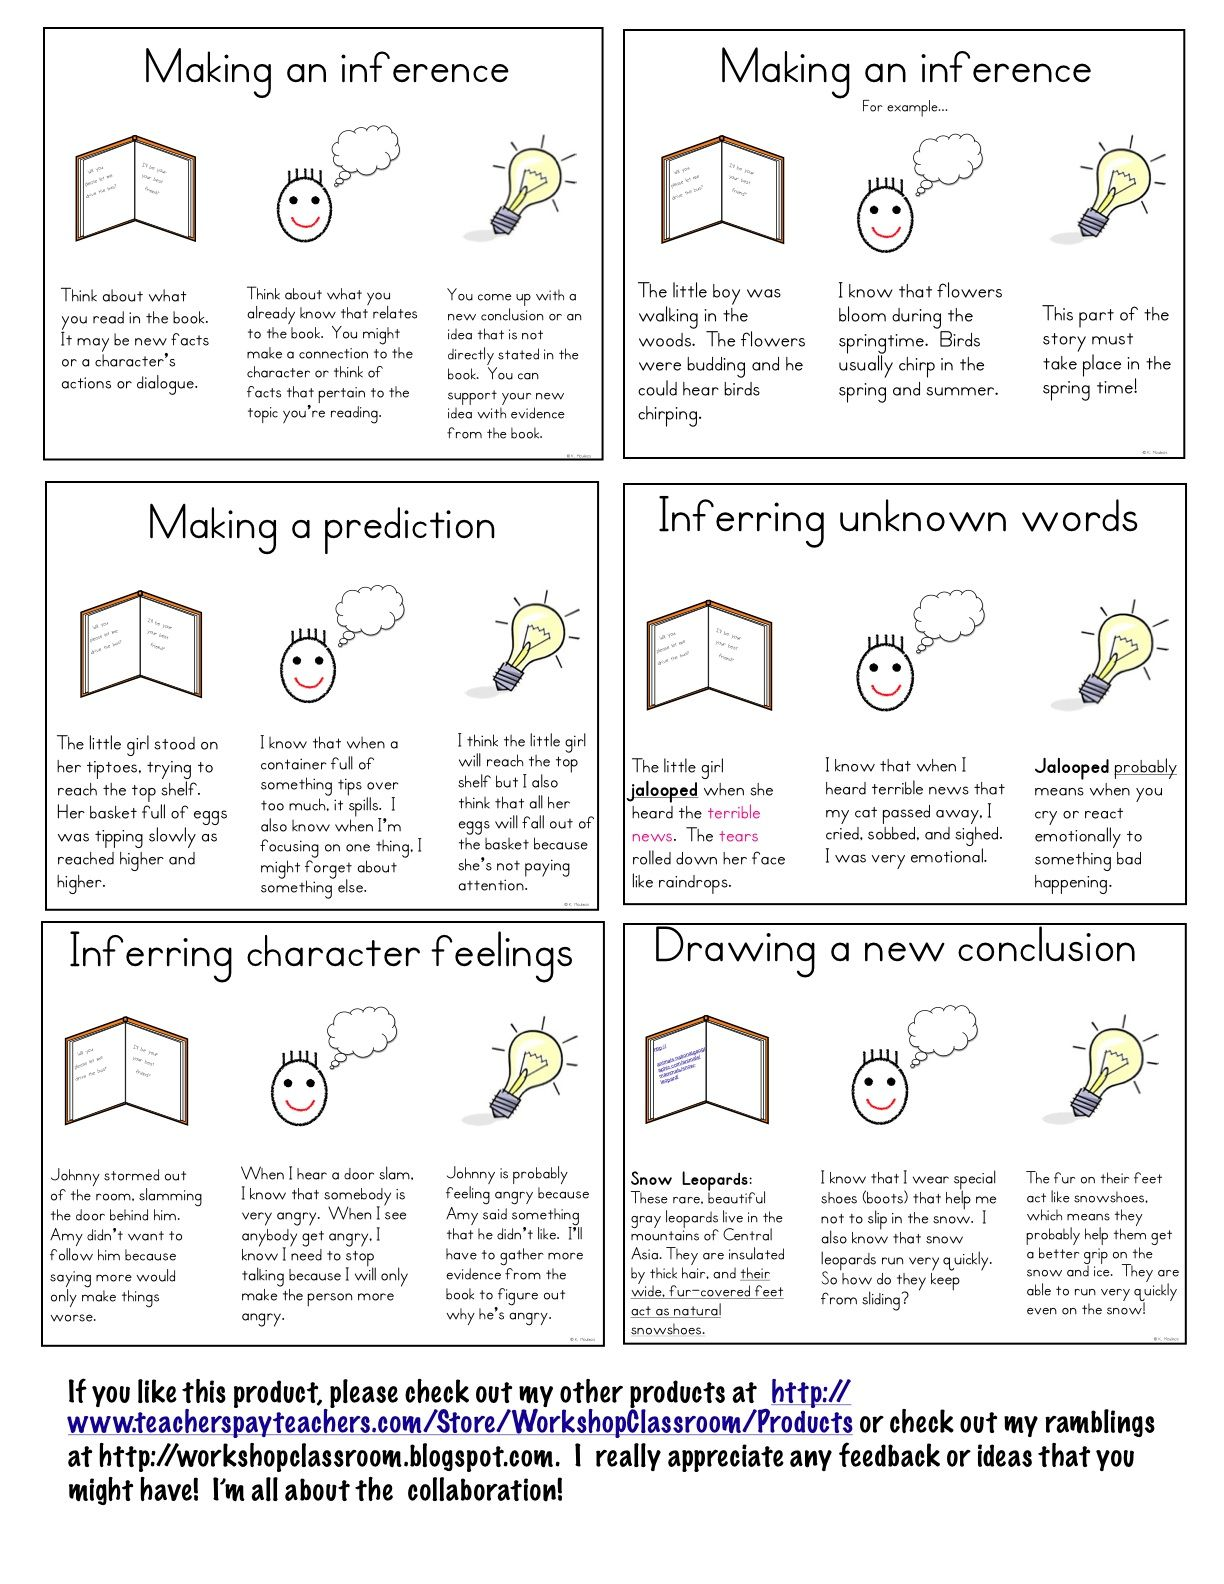 Worksheets Making Inferences Worksheet 4th Grade worksheet observation inference luizah and 17 images about inferencing on pinterest graphic organizers beautiful artwork charts